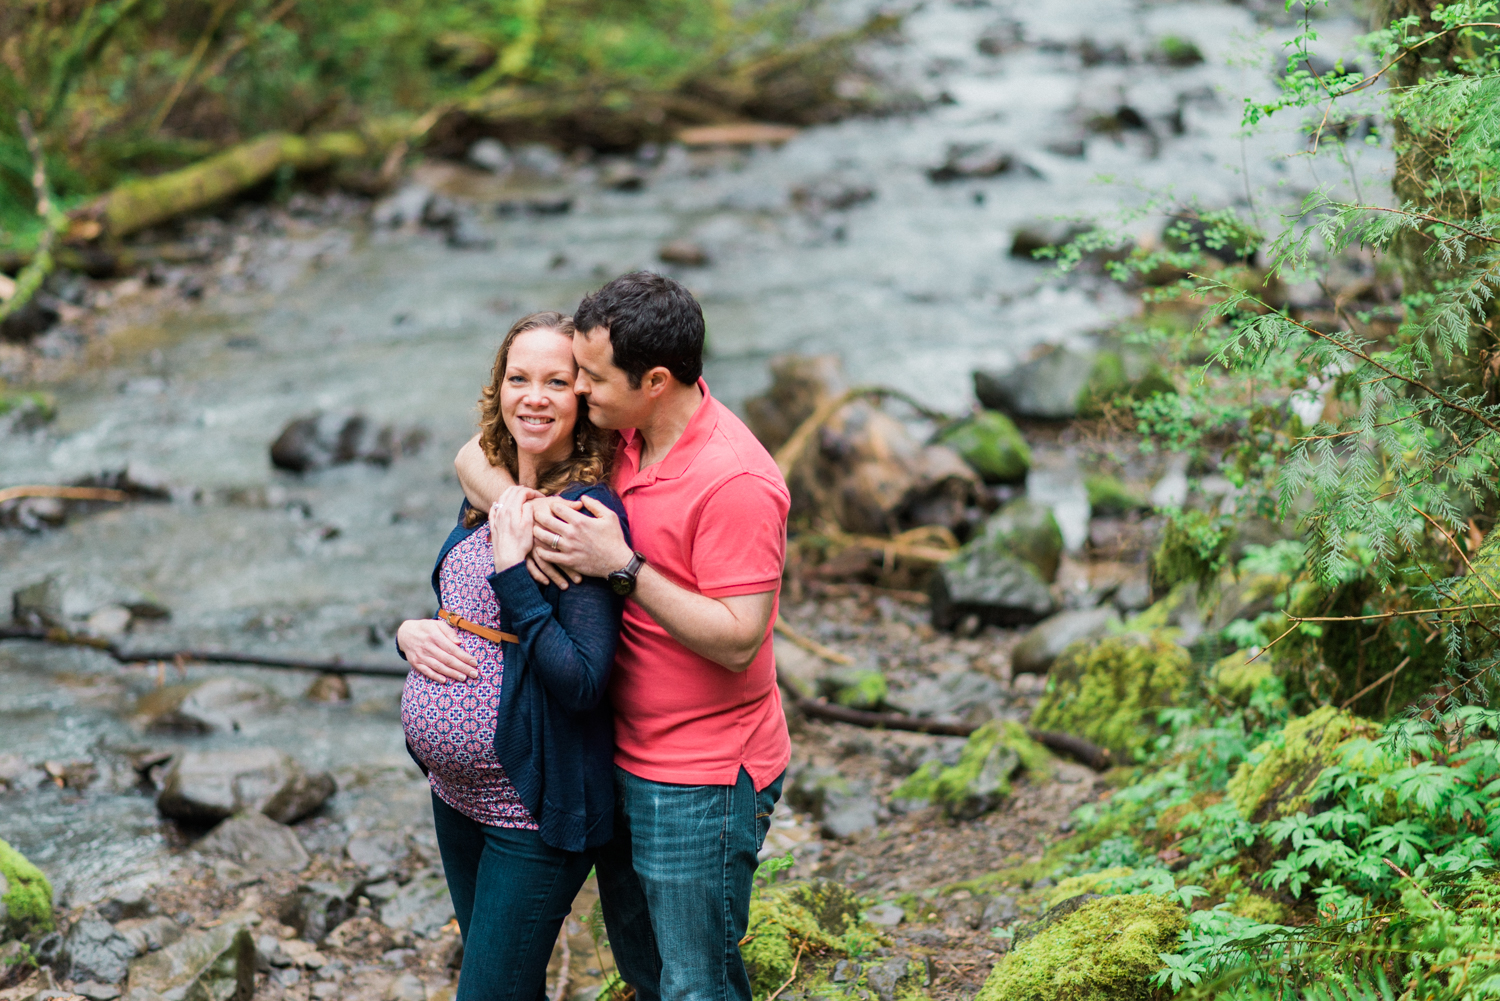 forest-park-maternity-photography-portland-shelley-marie-photo-12.jpg